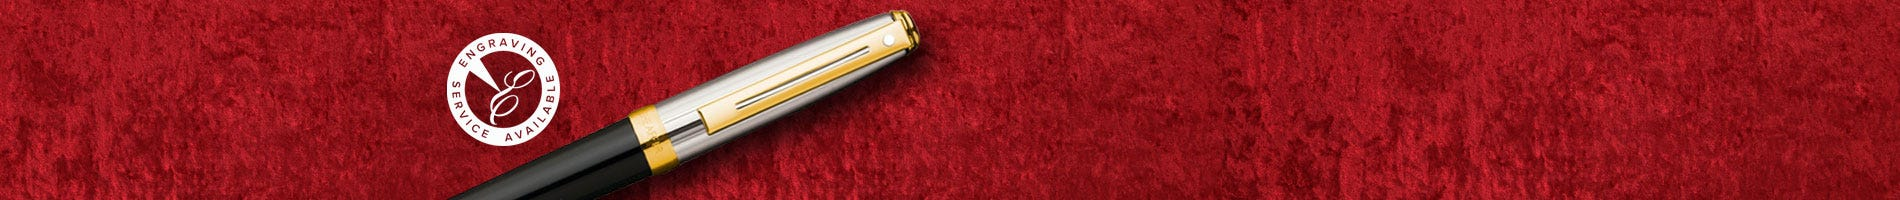 Sheaffer prelude fountain pen in black and chrome with gold accents